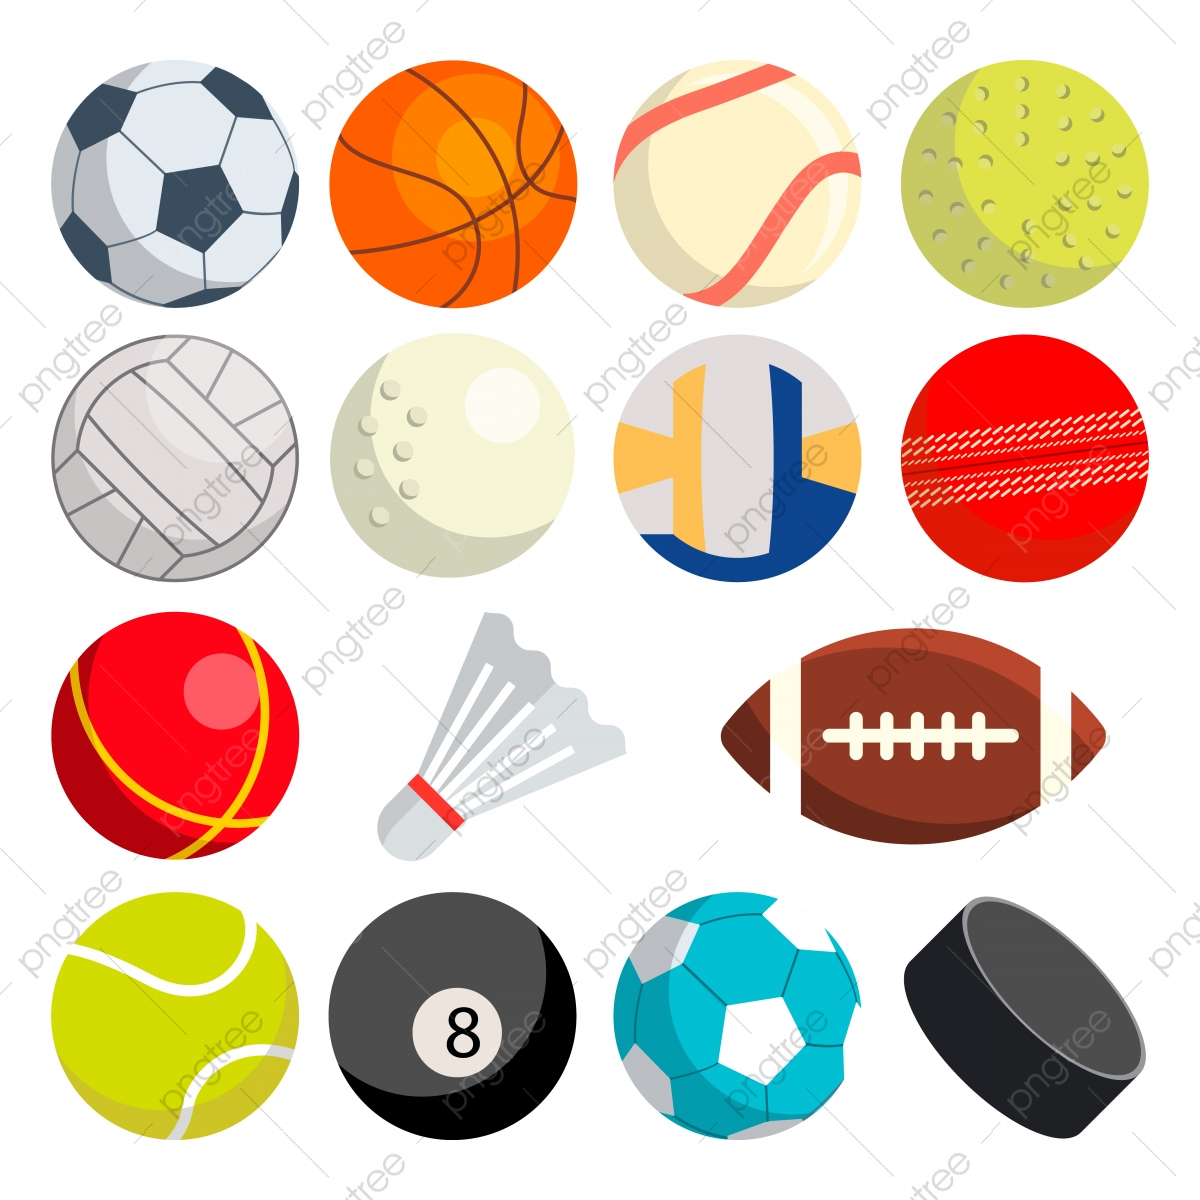 Sport Balls Set Vector Round Sport Equipment Game Classic Balls Gaming Icons Soccer Rugby Baseball Basketball Tennis Puck Volleyball Isolated Illustration Soccer Sport Football Png And Vector With Transparent Background For Free